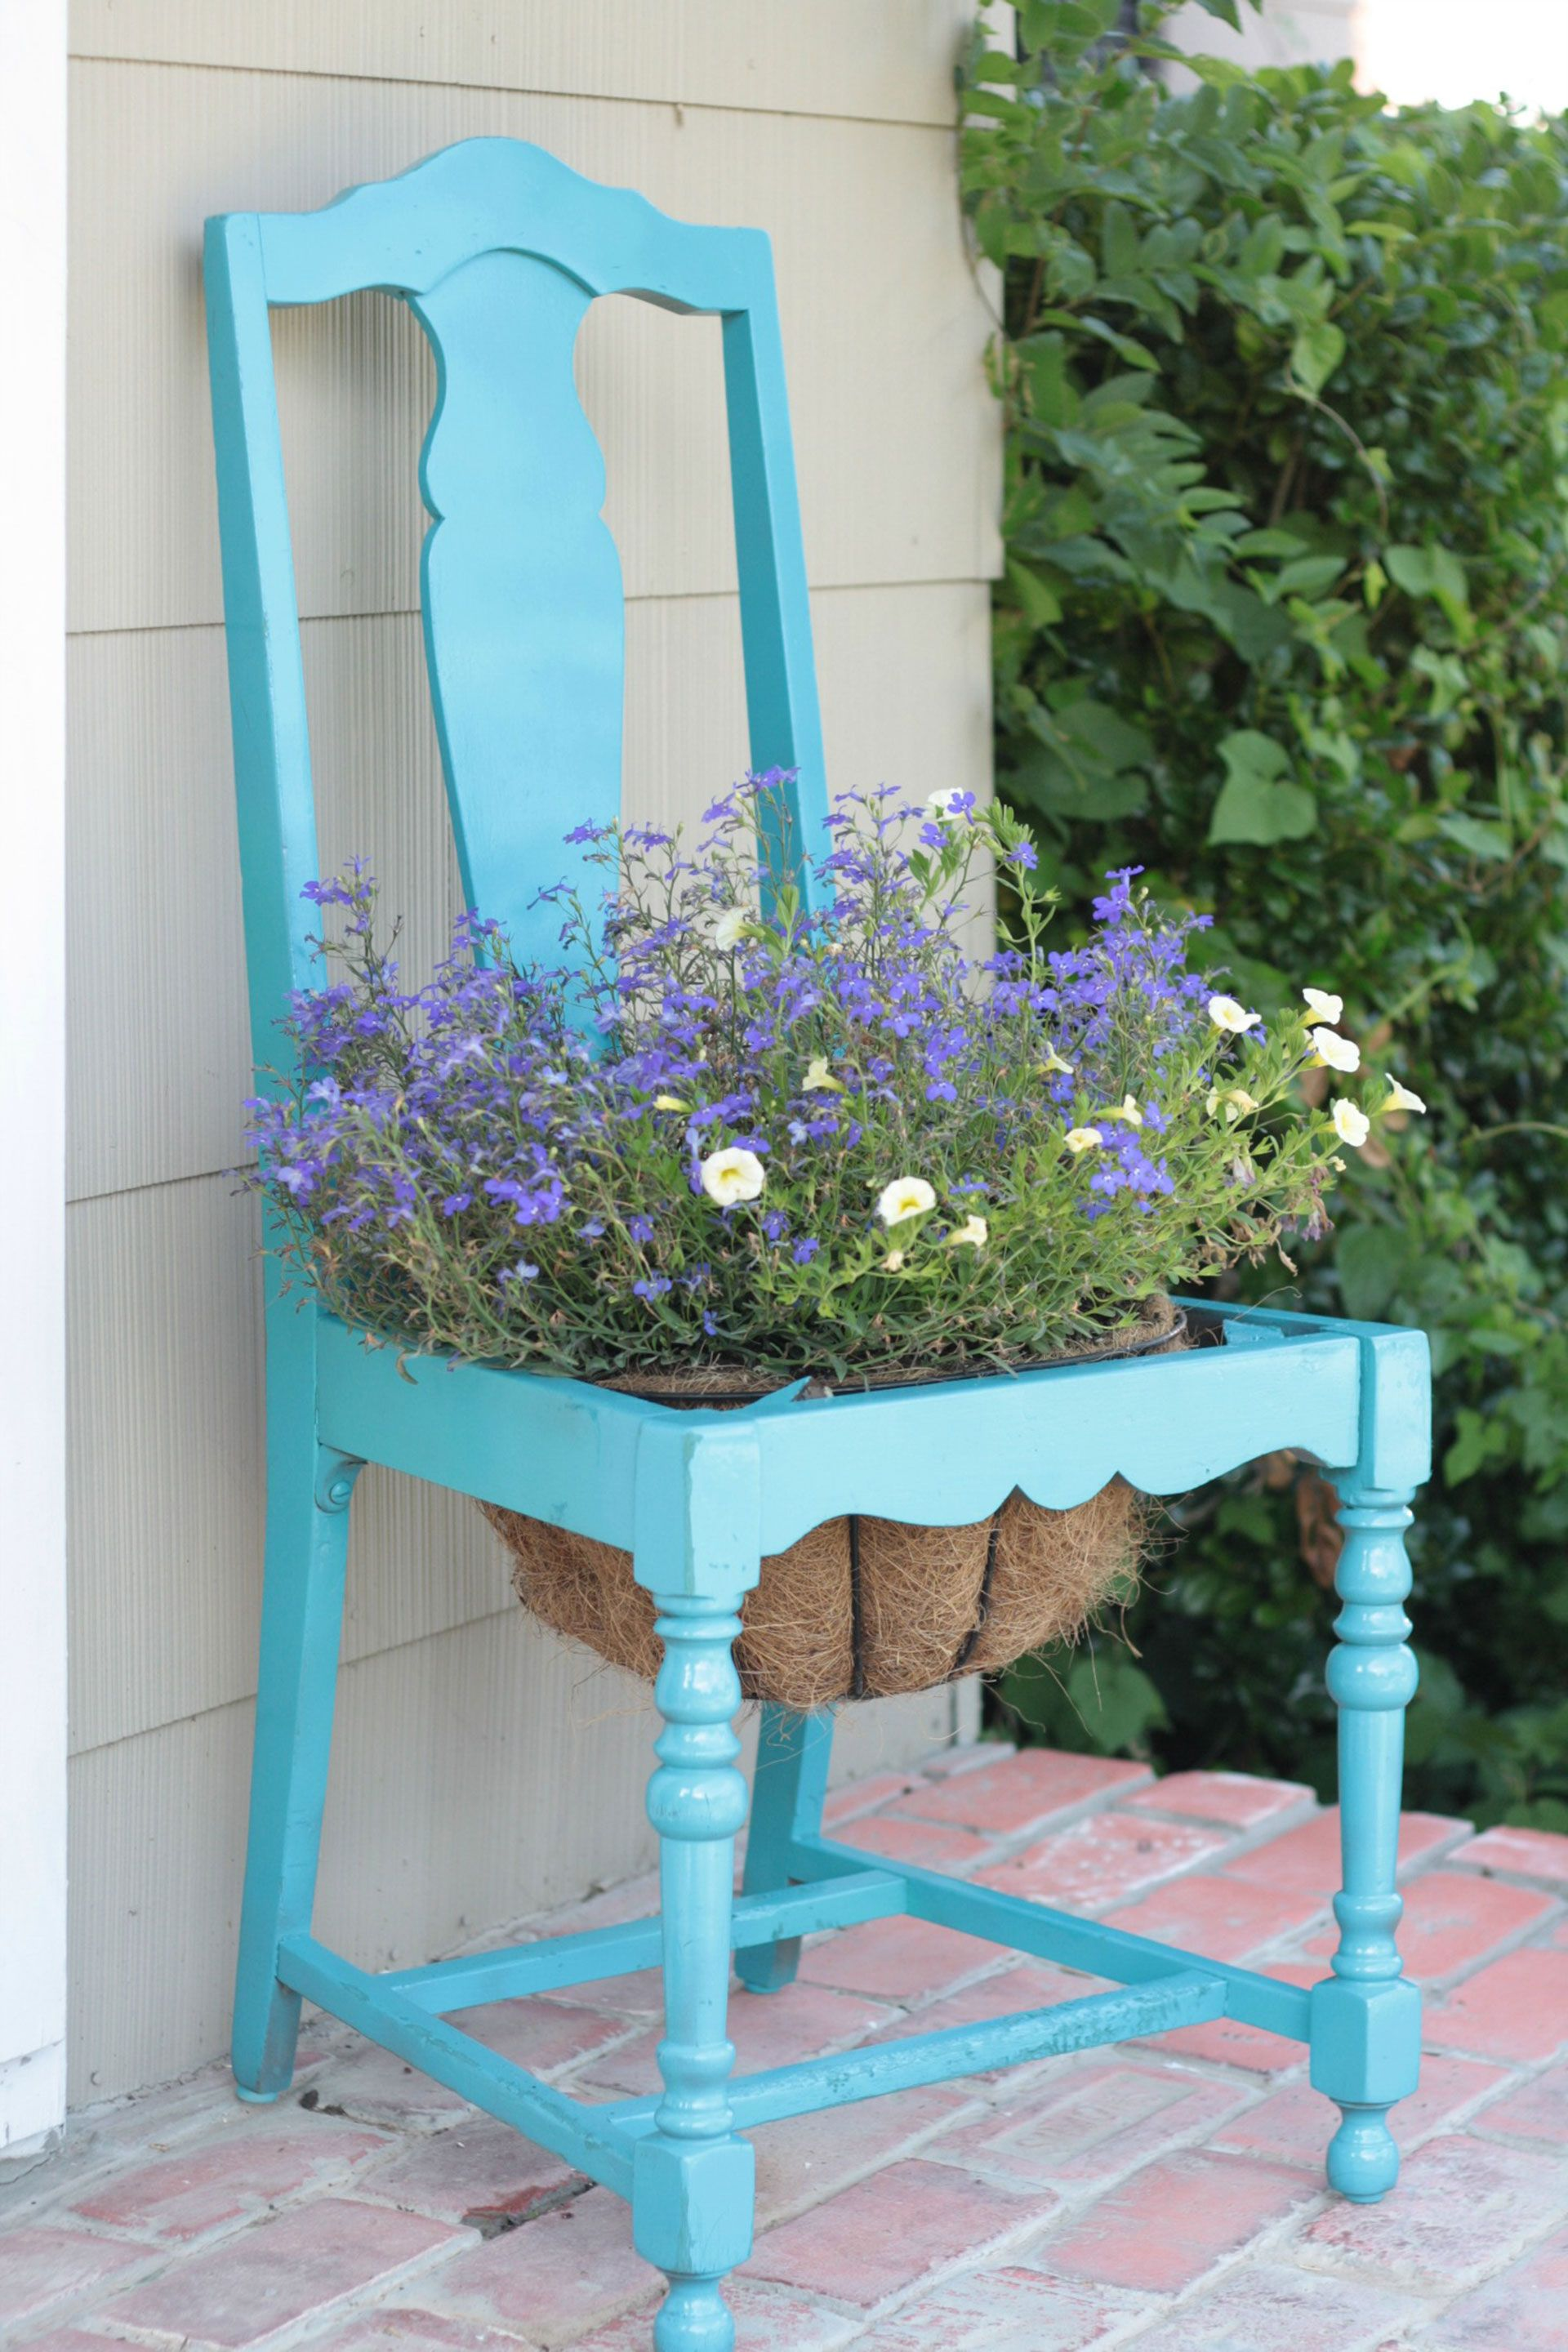 Here Are Types Of Garden Chairs You Could Select For The Amazing Rustic Decoration Of Your Courtyard